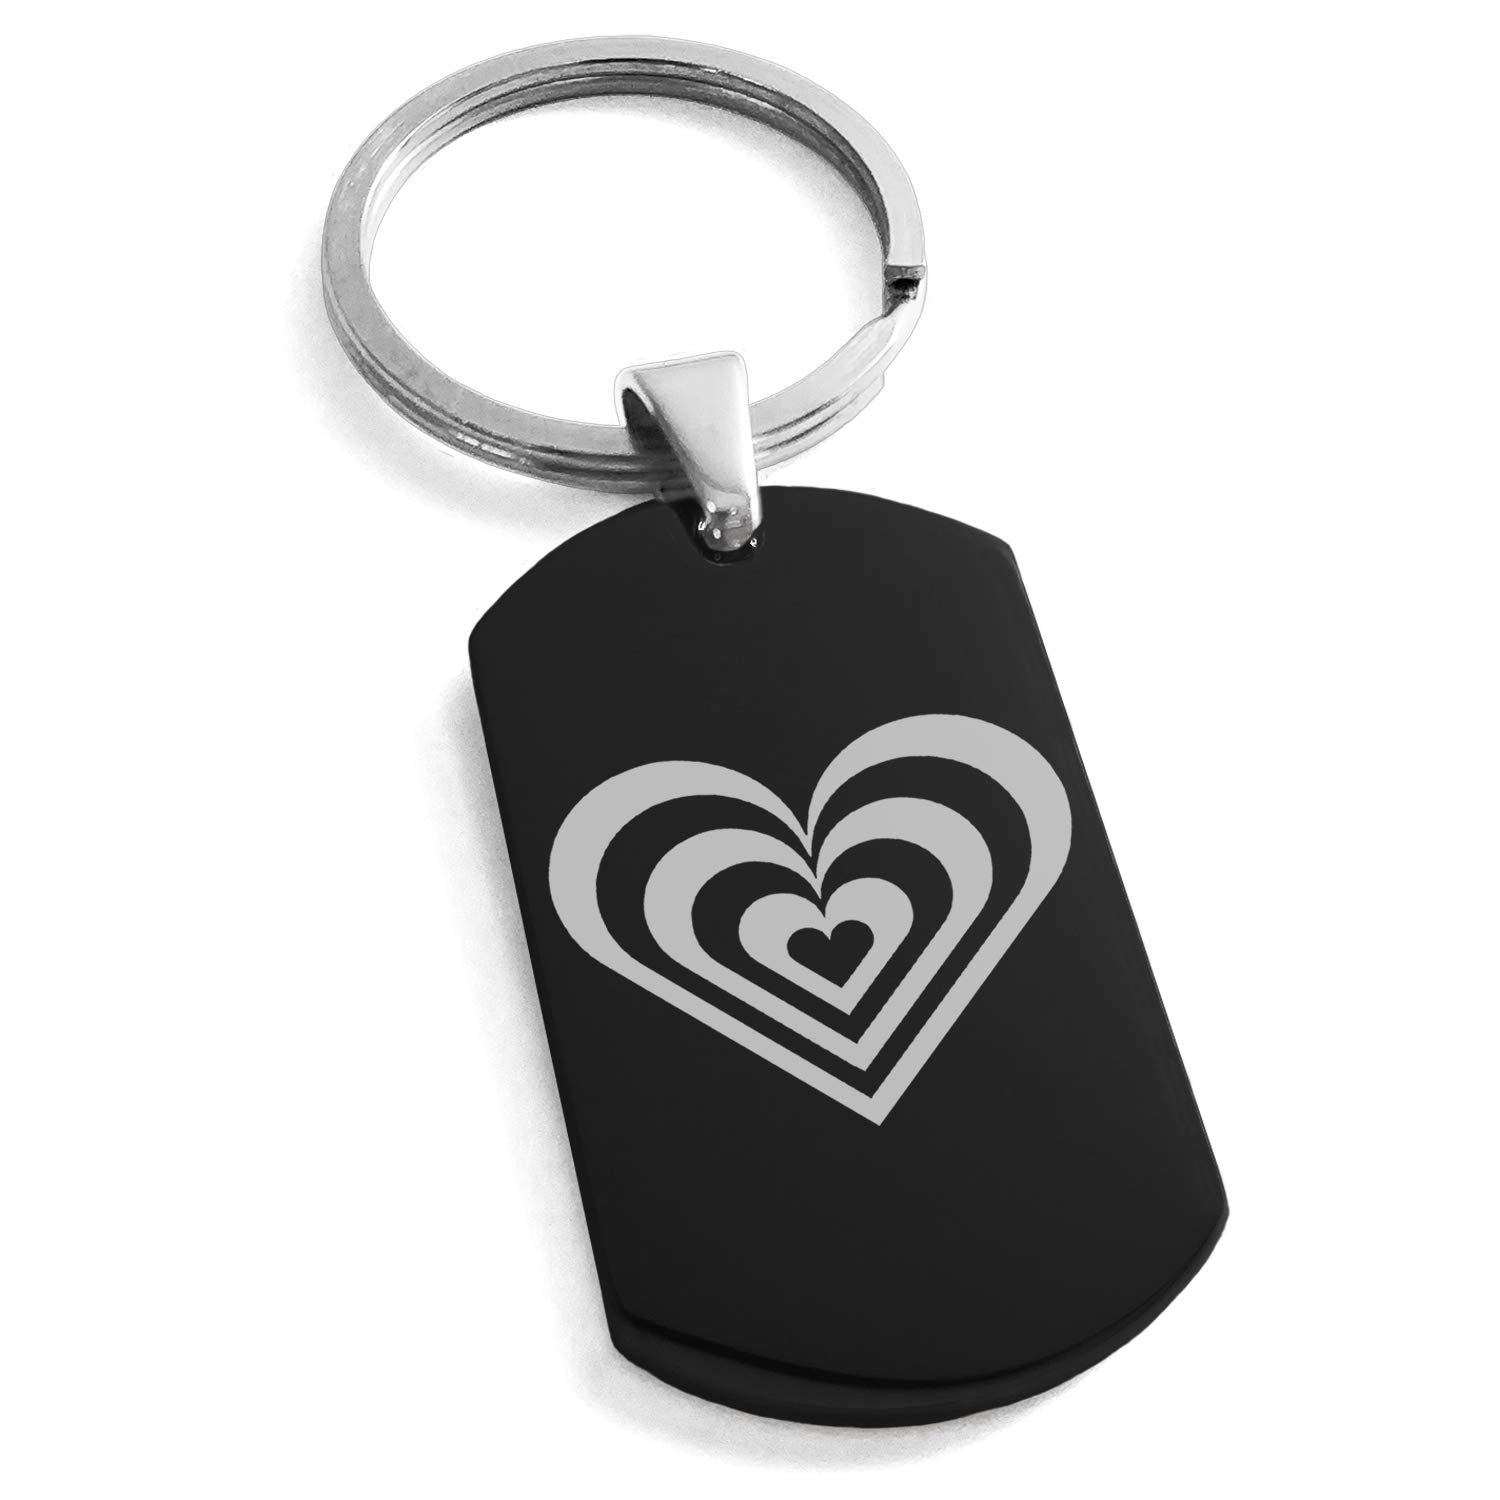 Tioneer Black Stainless Steel Hypnotic Love Heart Engraved Dog Tag Keychain Keyring